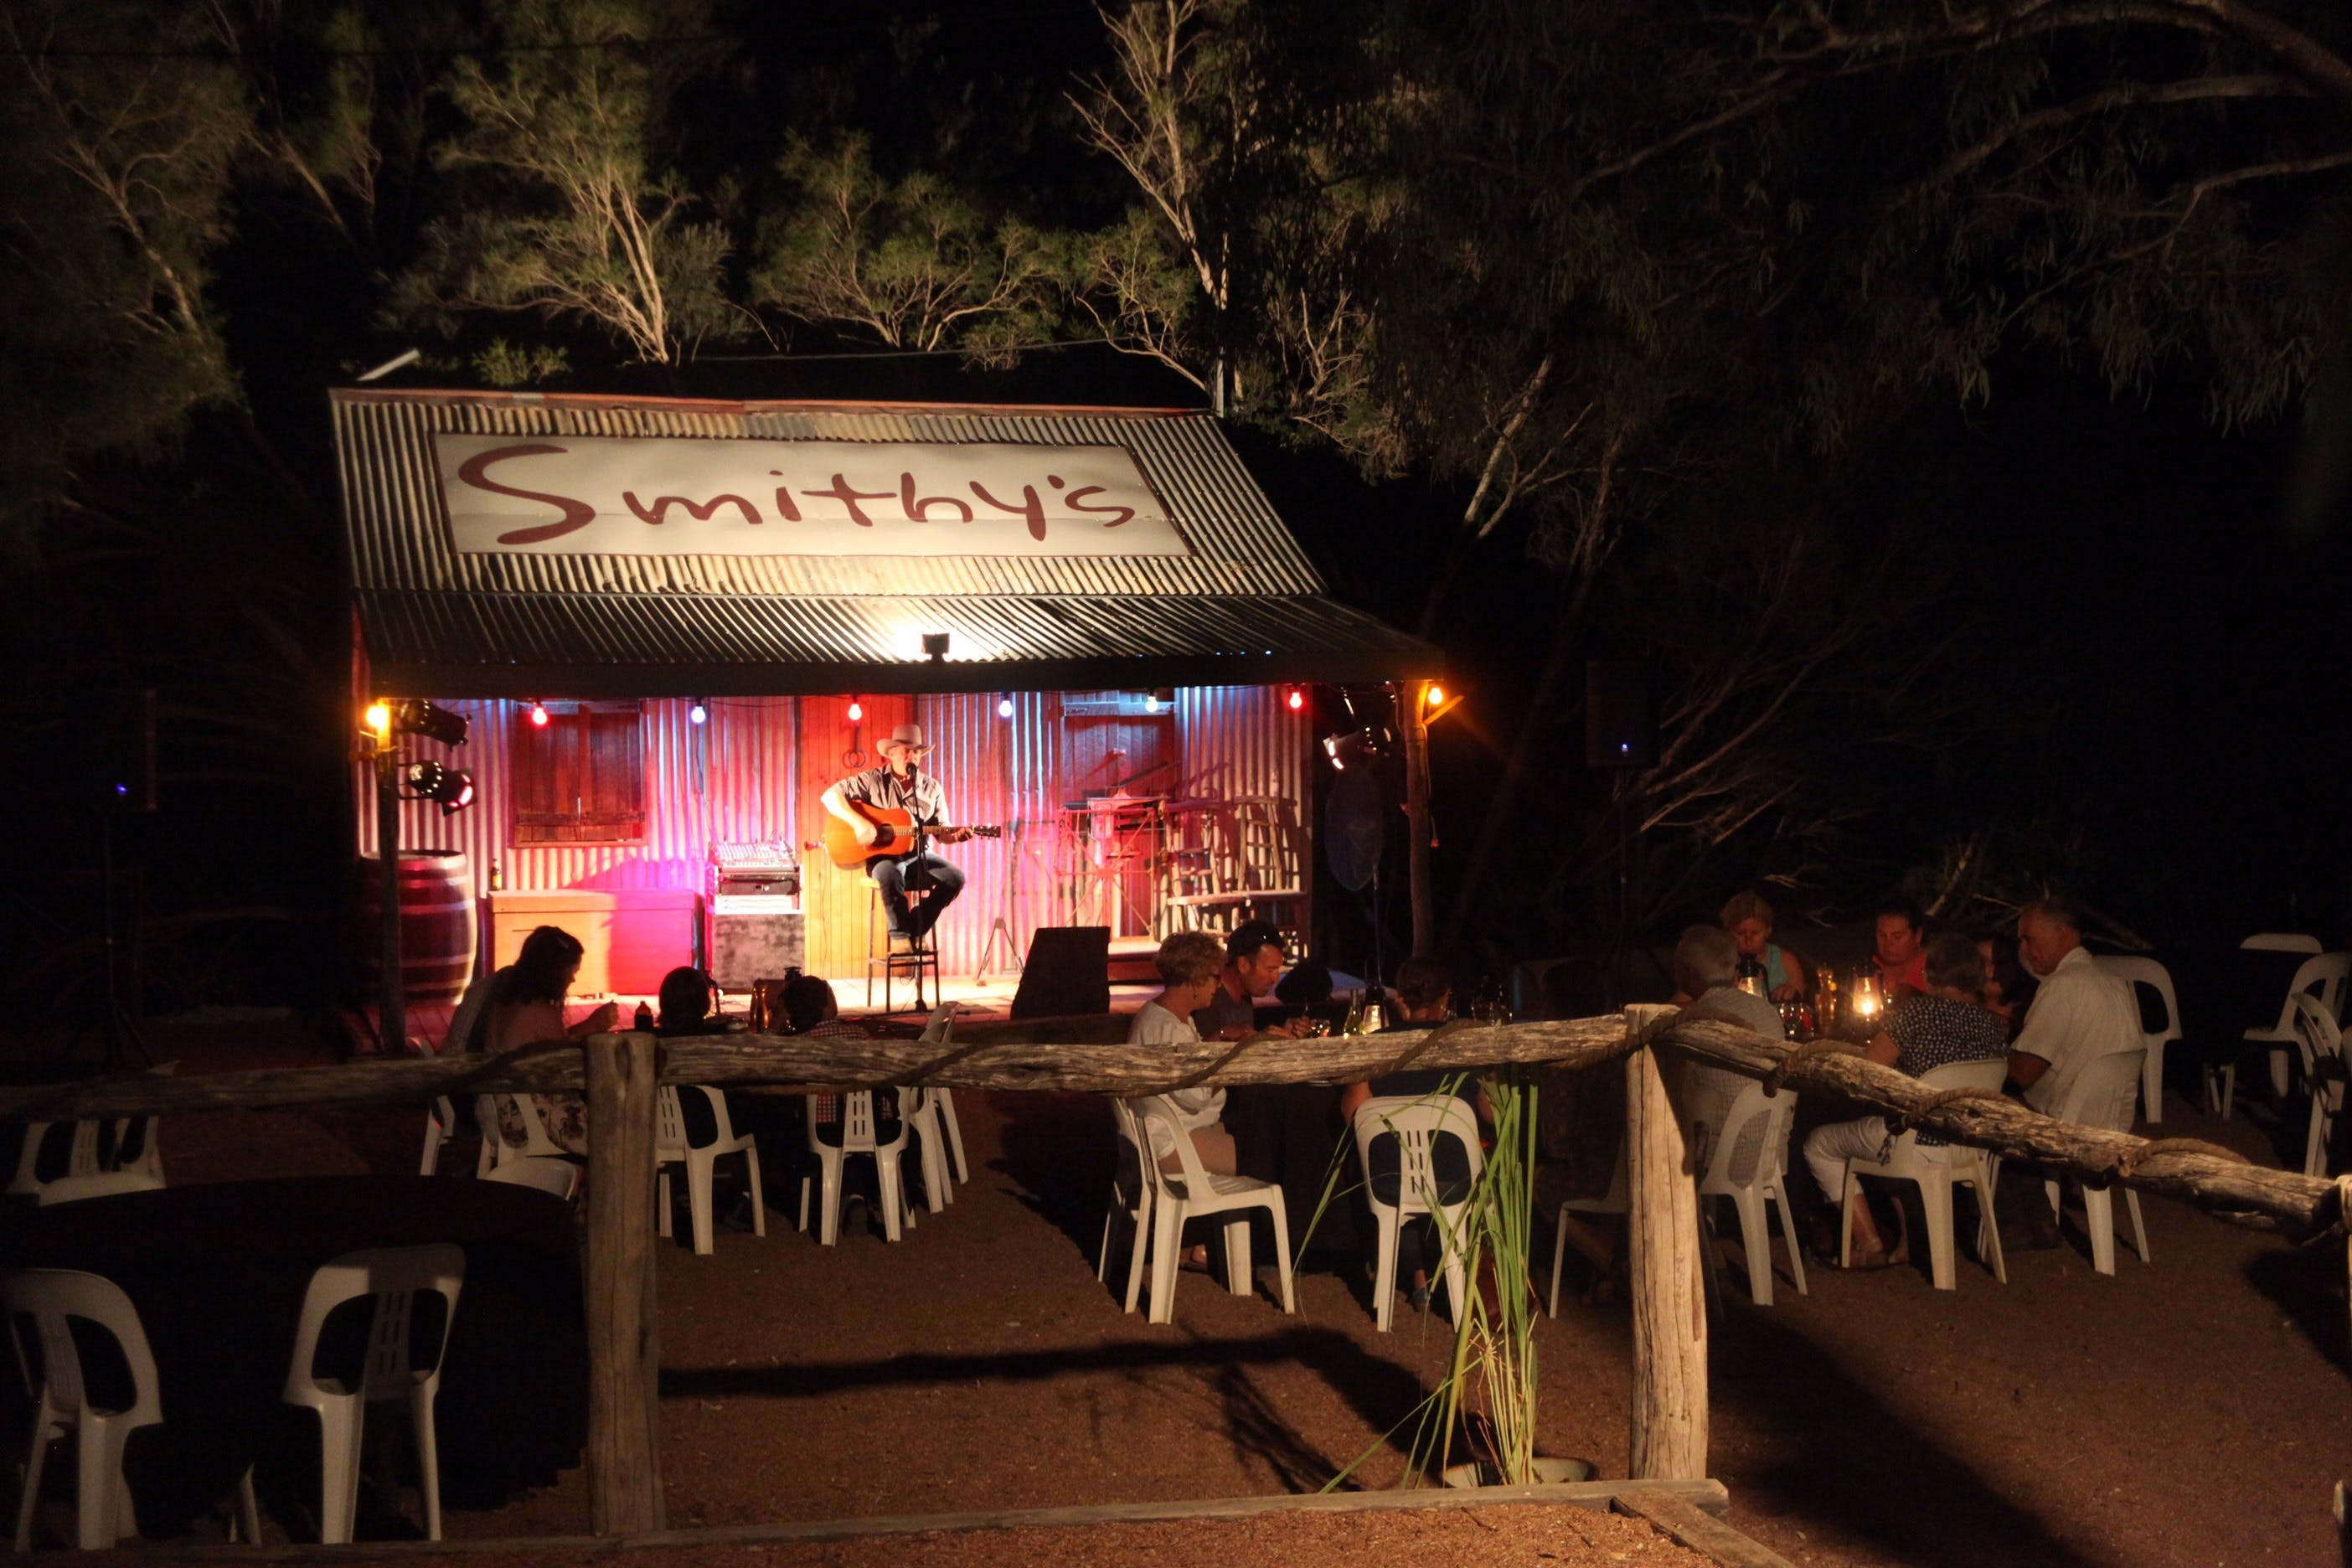 Smithy's Outback Dinner and Show - Accommodation Cairns